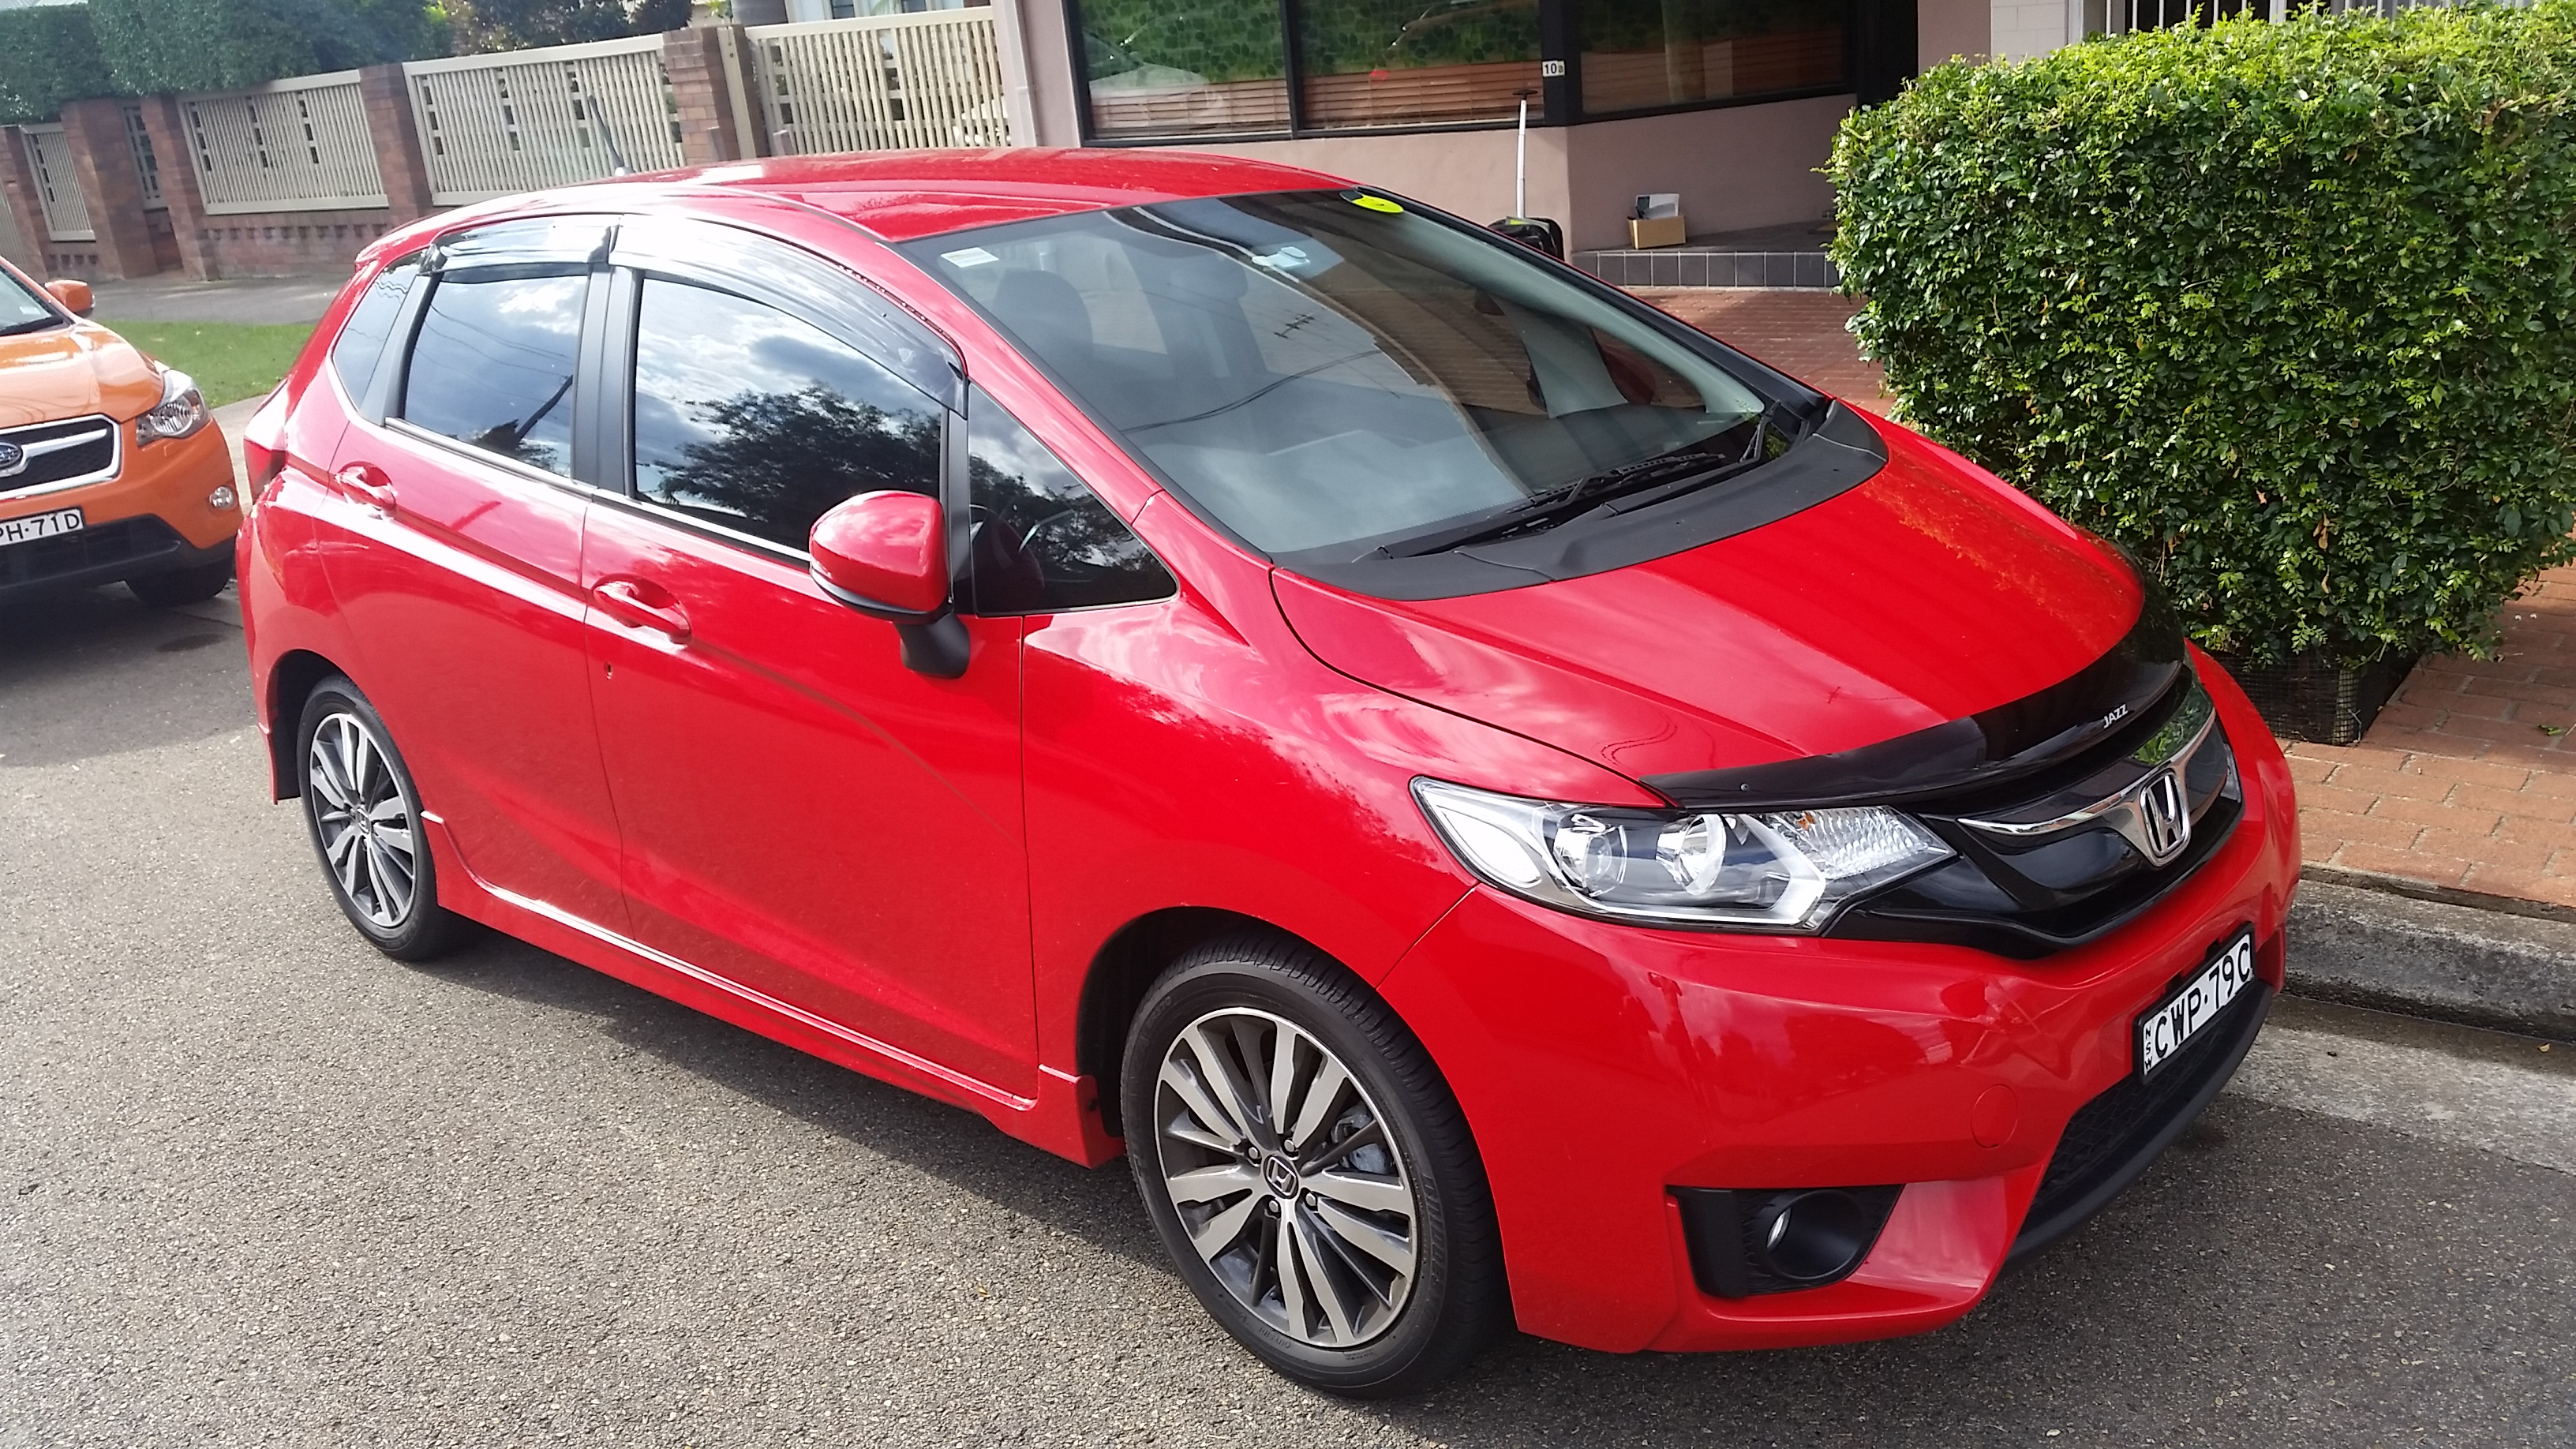 Picture of Katie's 2014 Honda Jazz